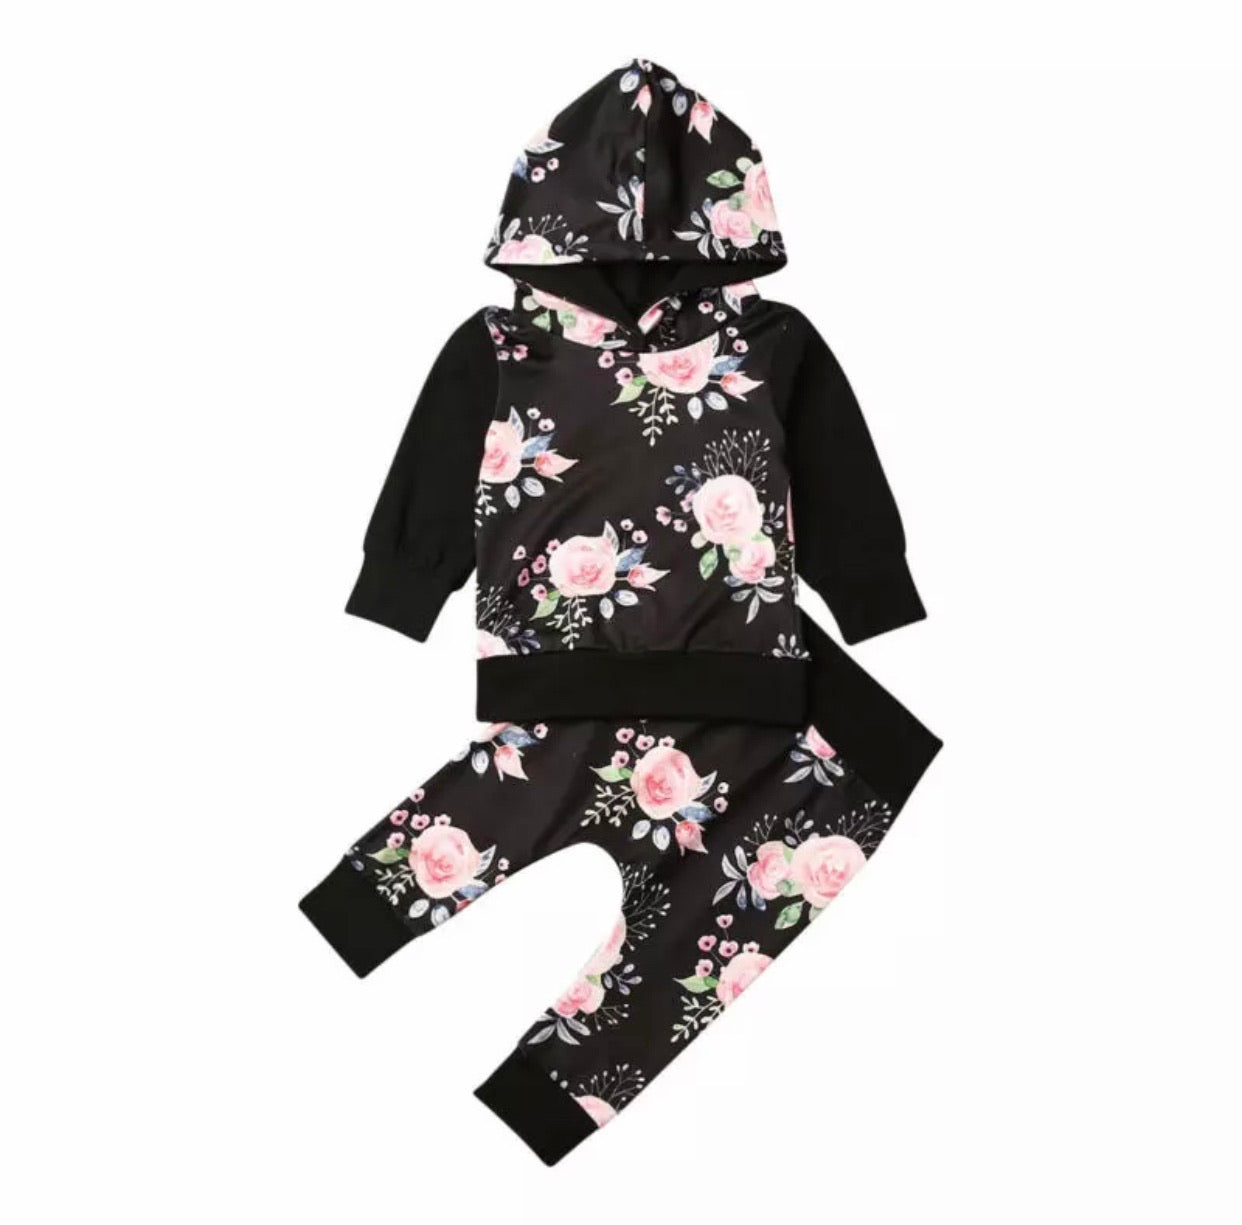 Kids-Winter-Outfits-Addison-Tracksuit